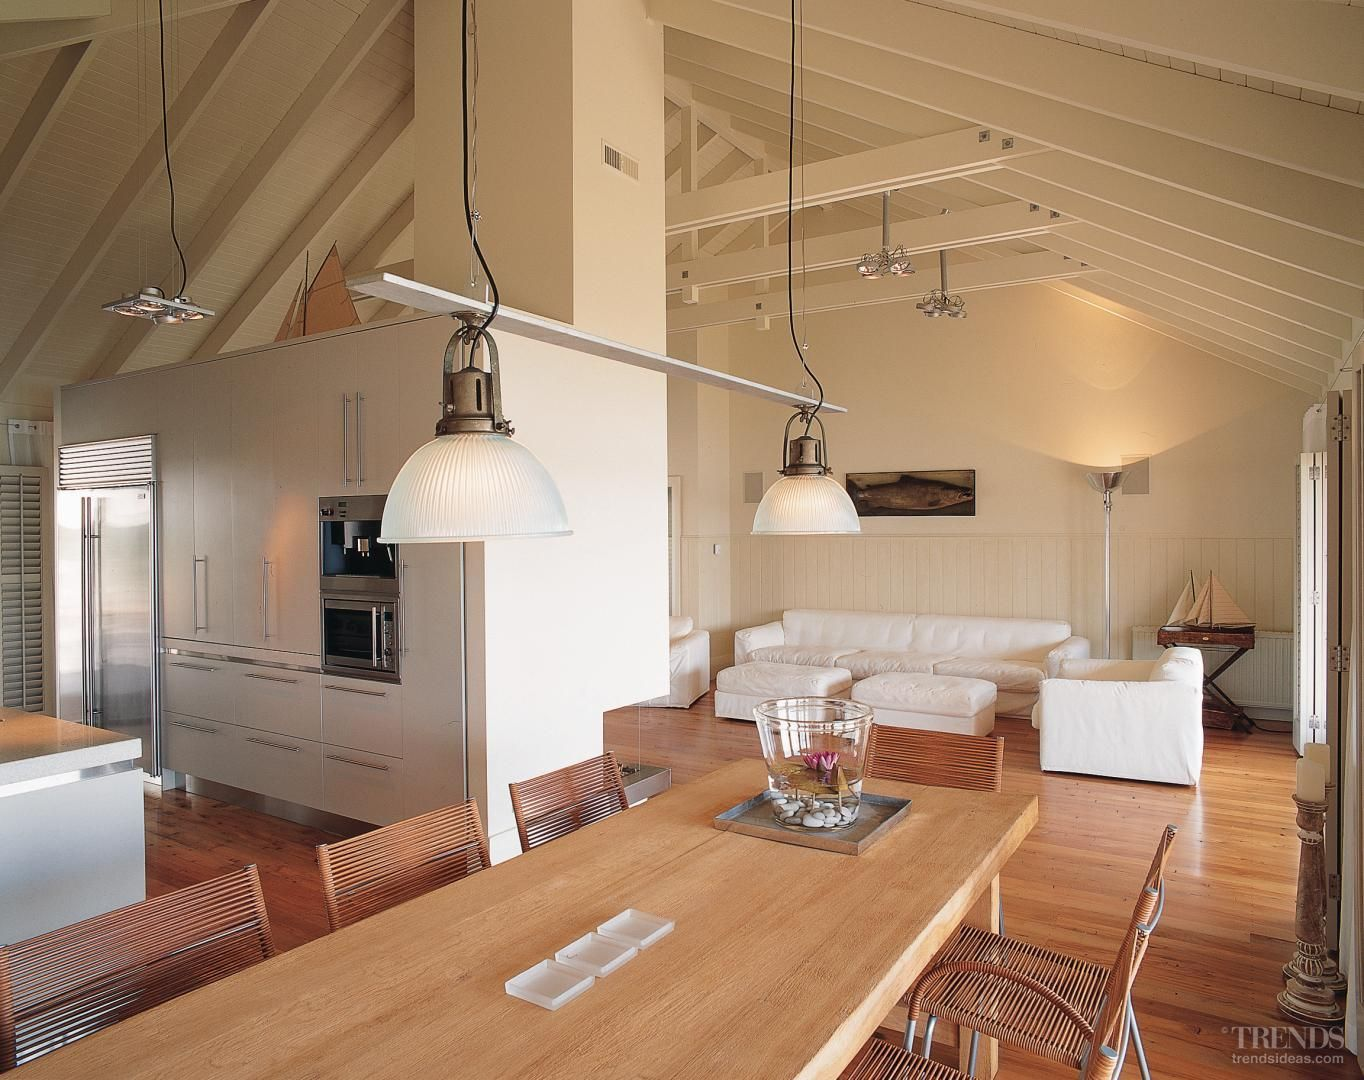 Open space interior design love the wood interior - Interior design open space ...